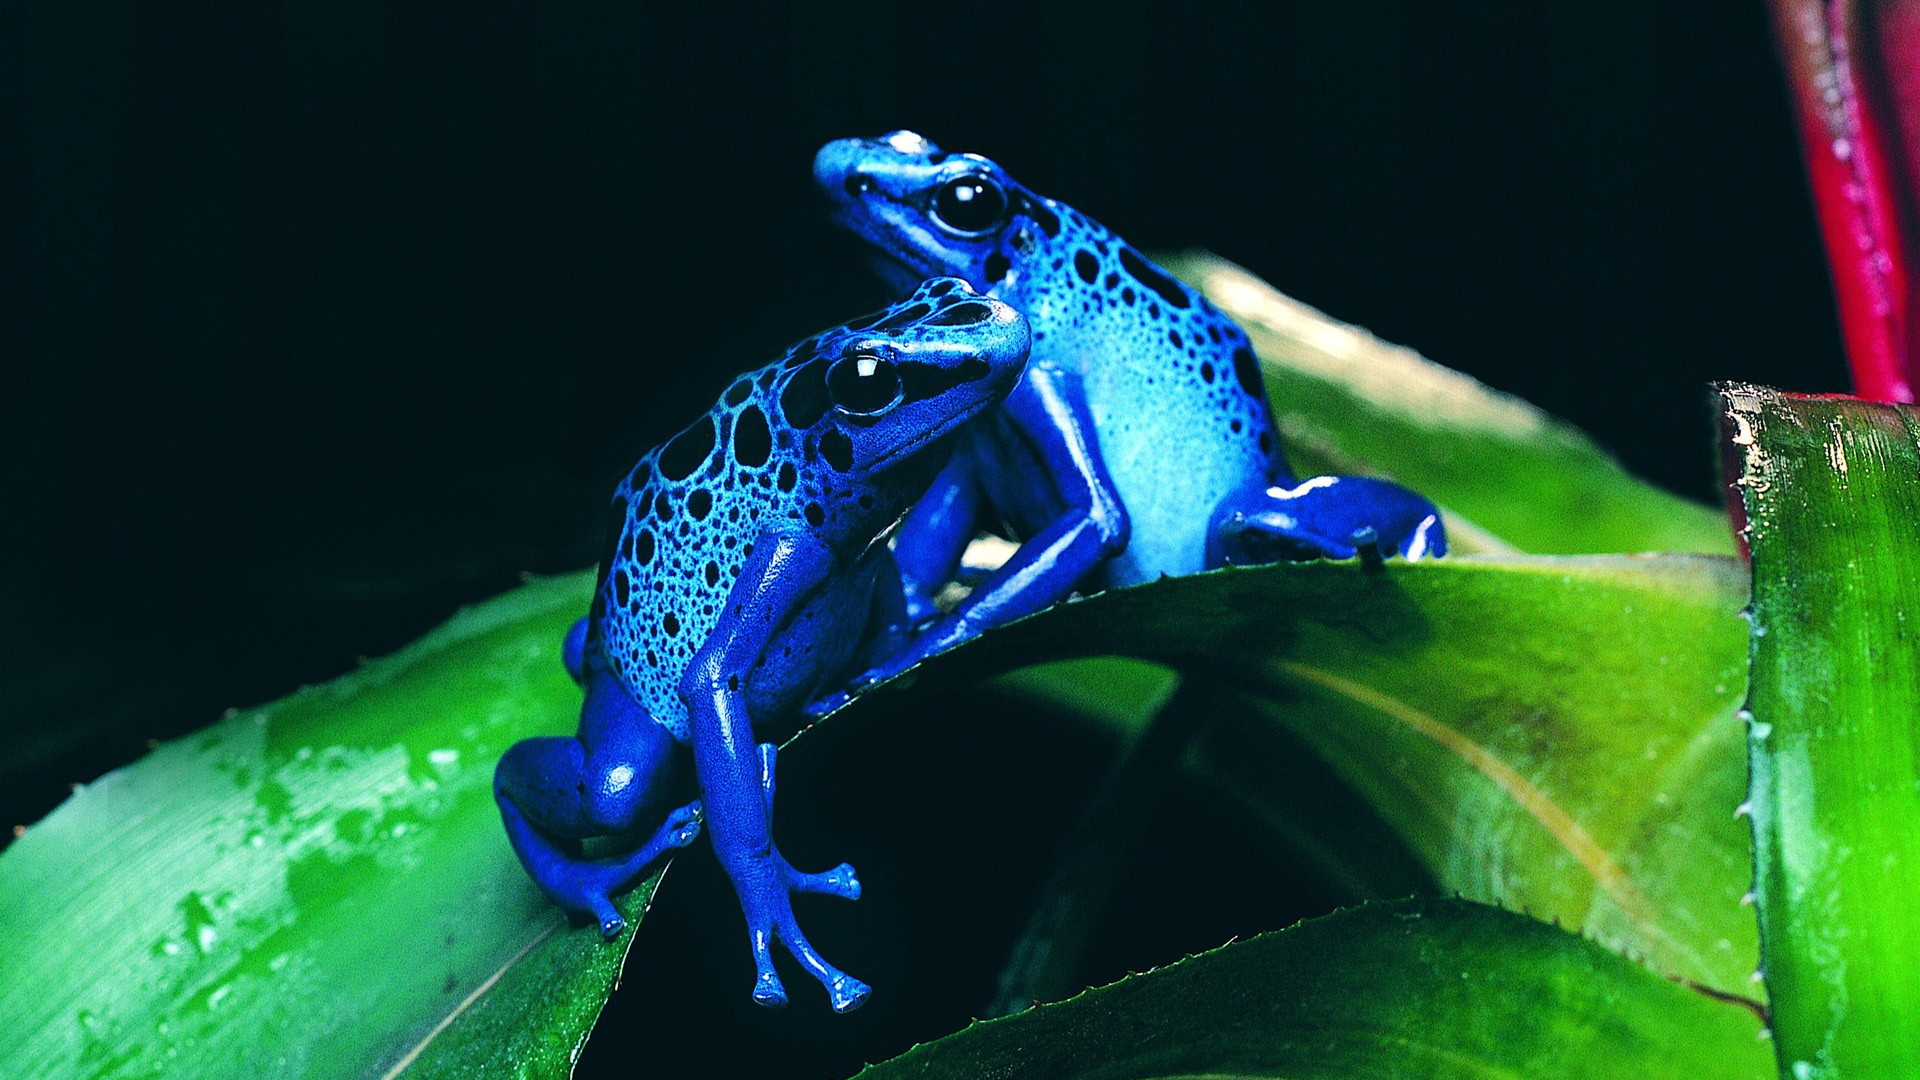 Wallpapers Full HD Wallpapers 1080p 5802 animals hd wallpapers frogs 1920x1080